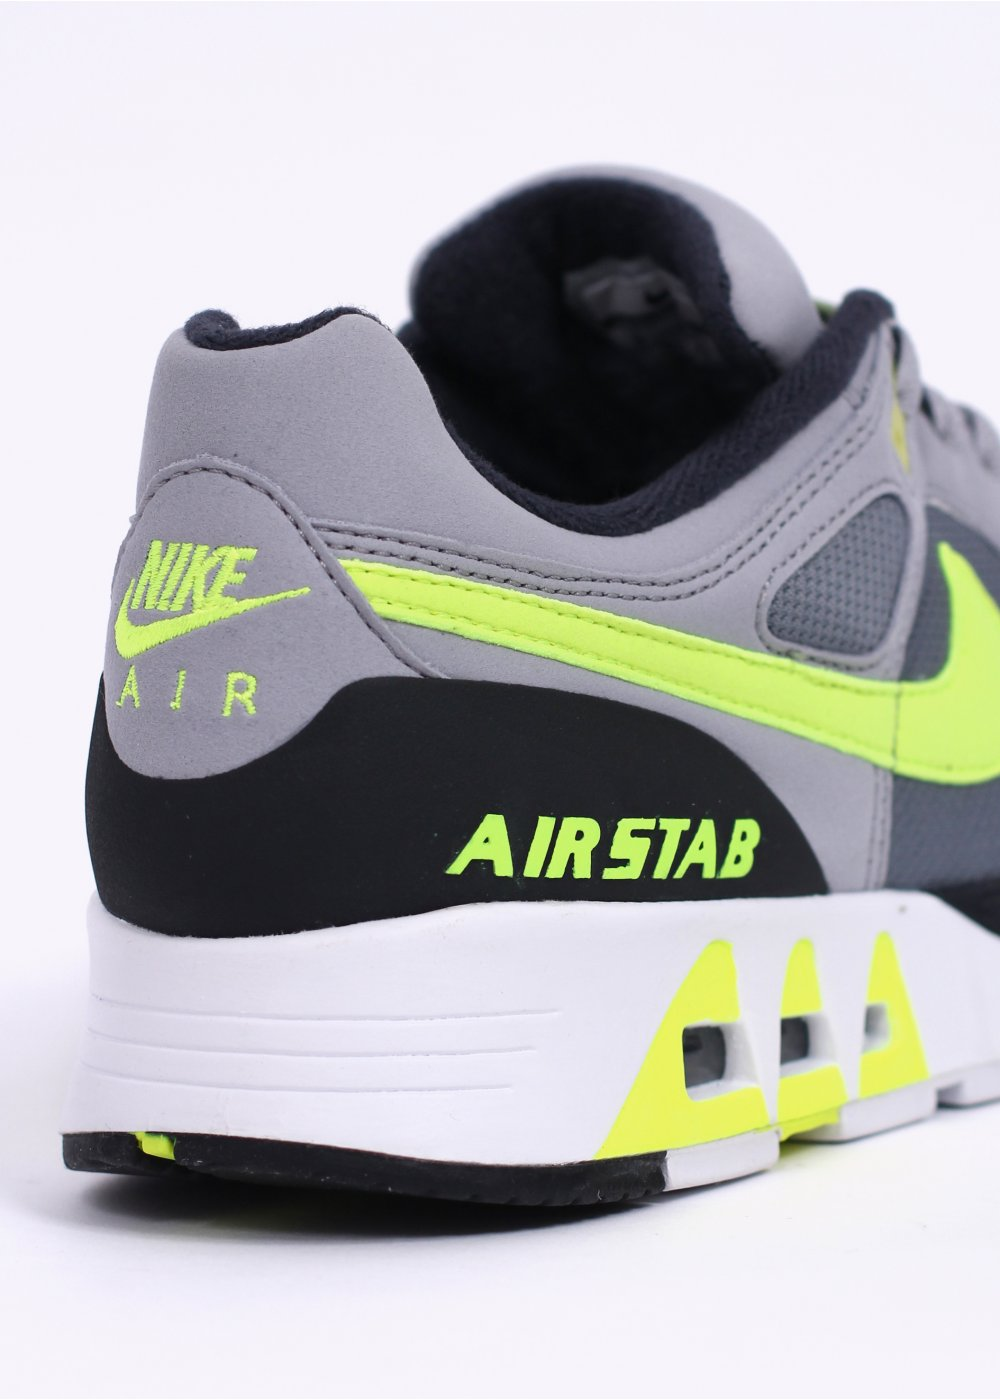 huge selection of 260f3 0b6eb Air Stab Trainers - Cool Grey   Volt   Wolf Grey